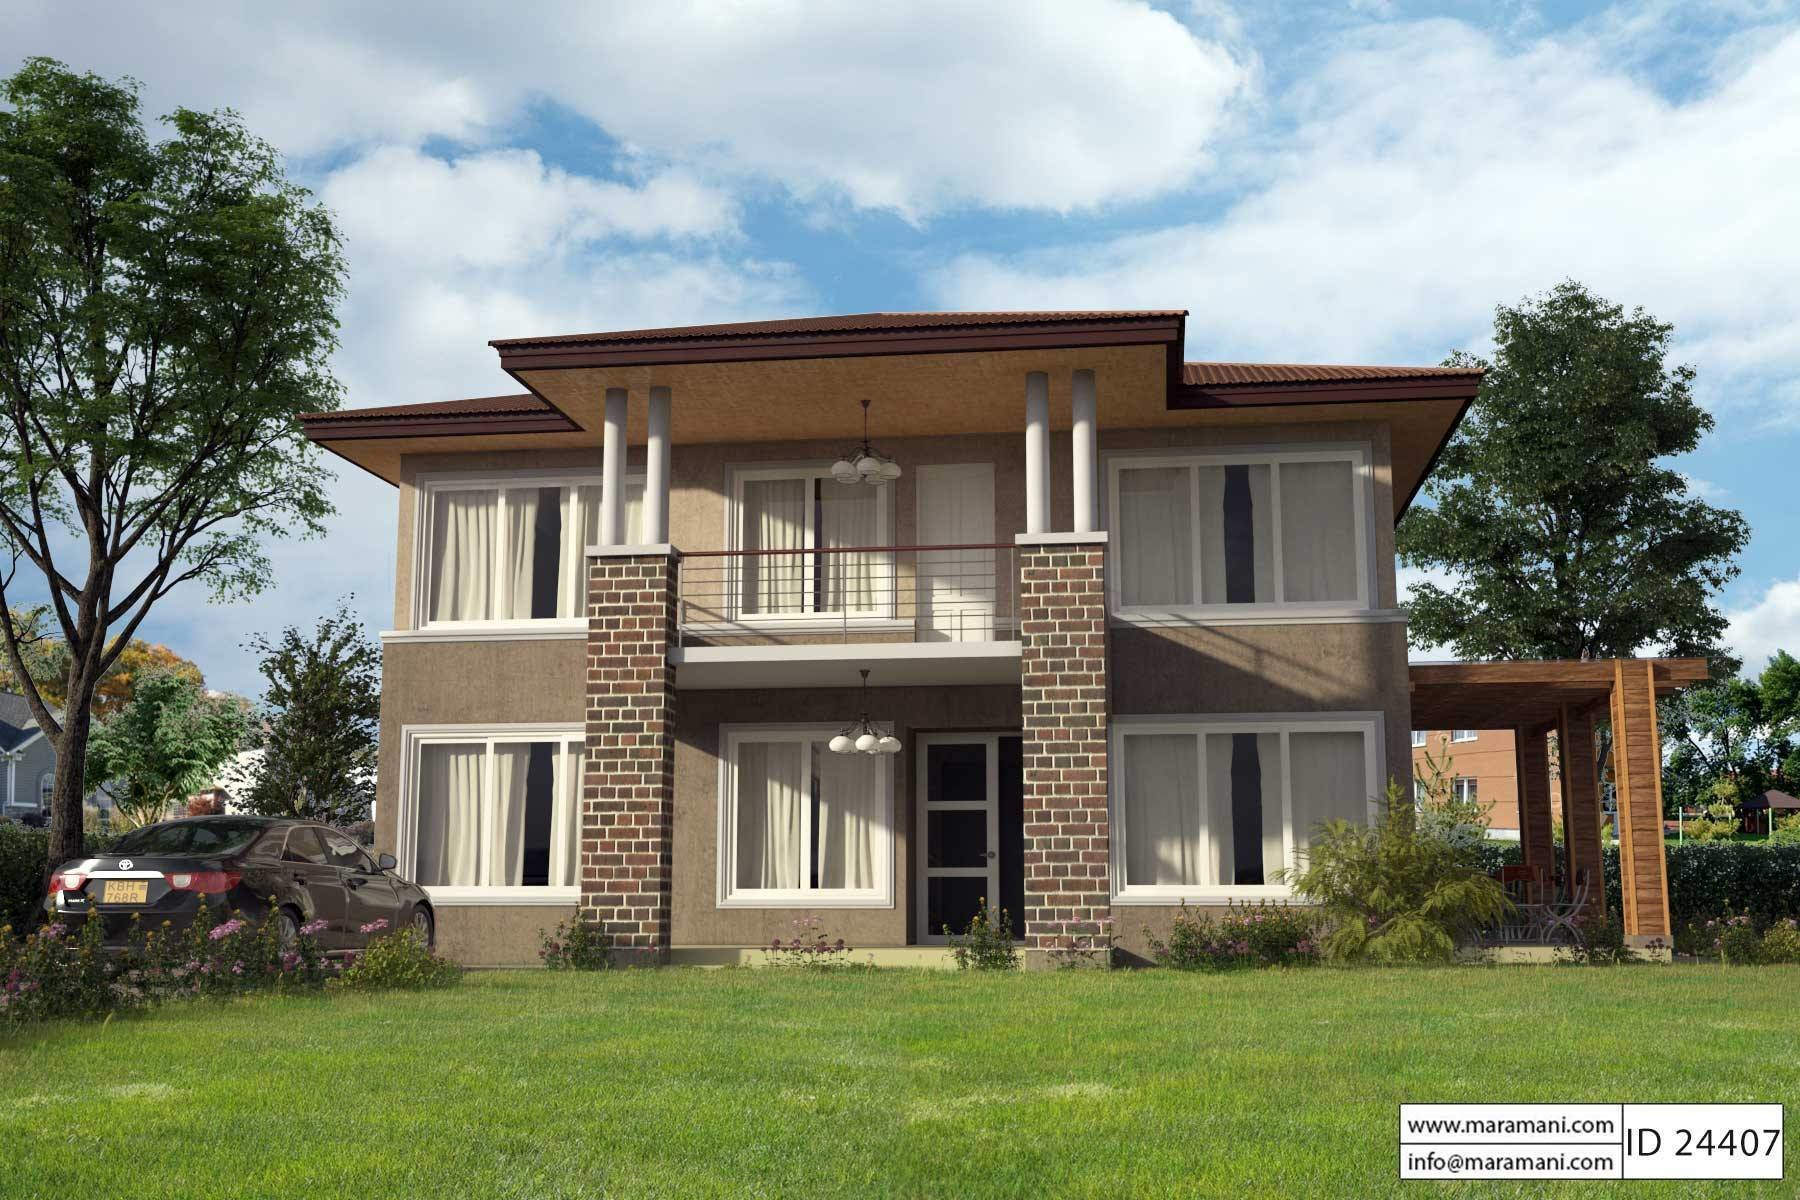 Best Four Bedroom House Plan Id 24407 House Plans Maramani Com With Pictures